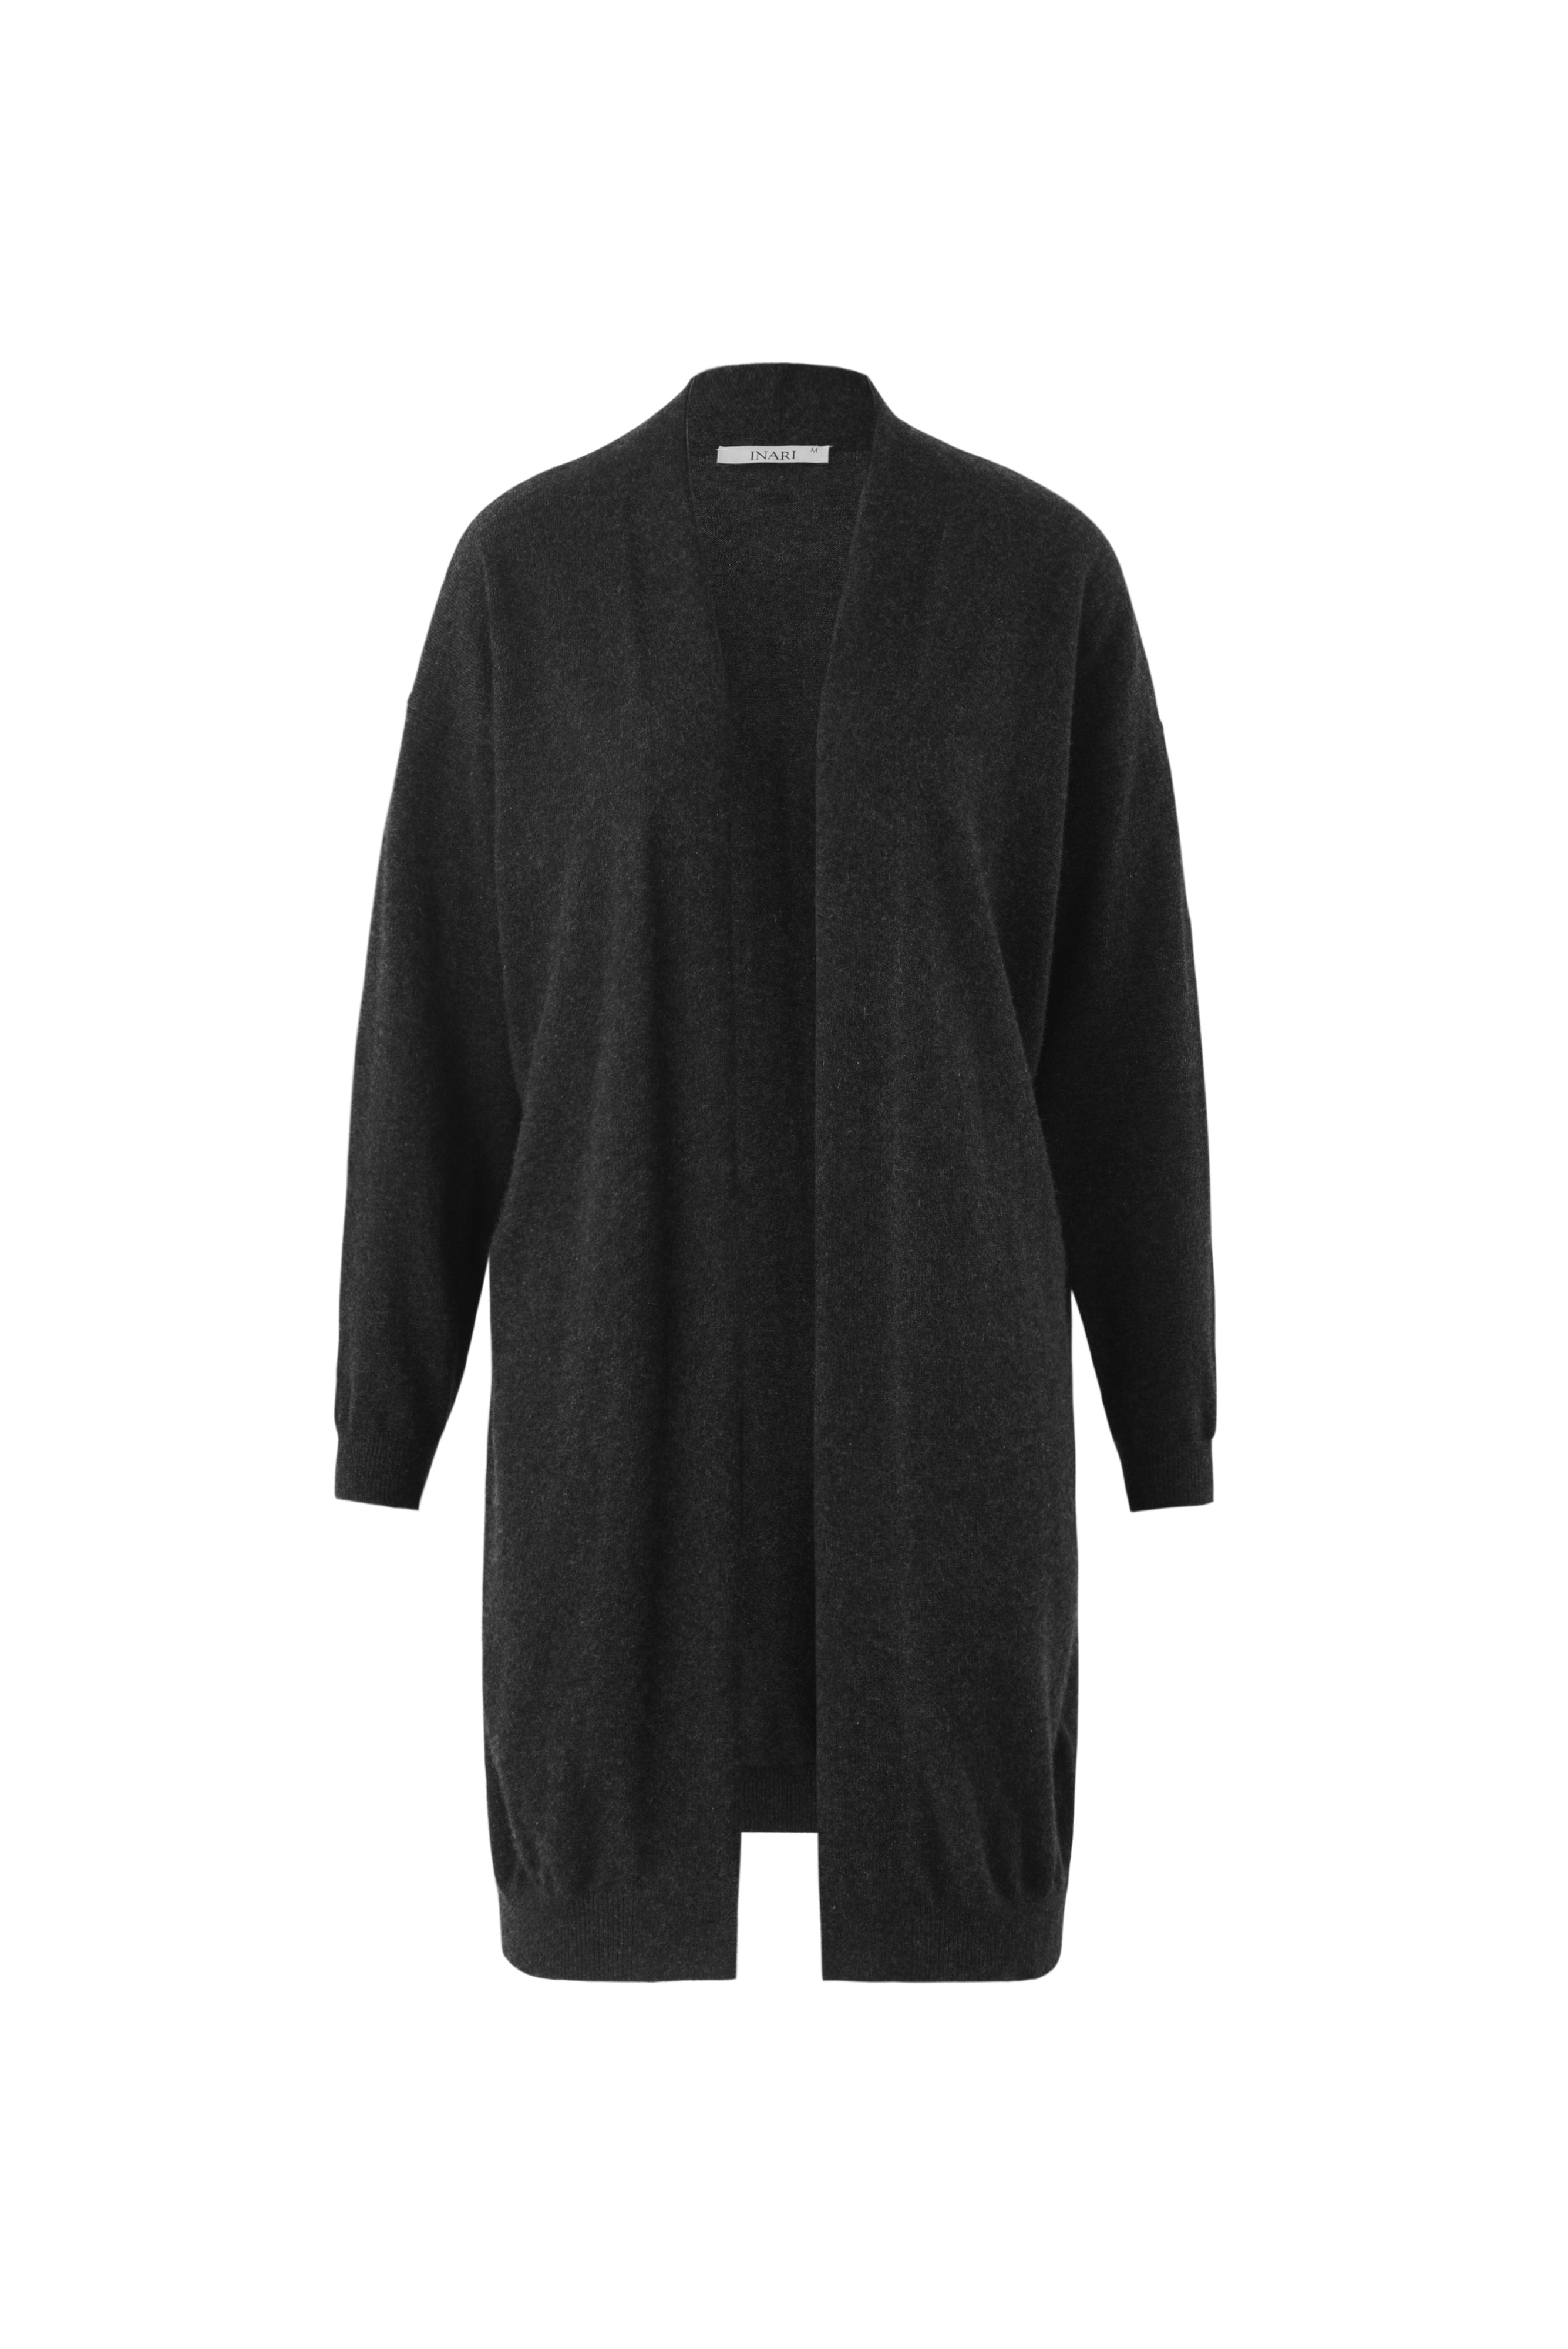 Inari Women's black cashmere cardigan - front side - 100% high-quality cashmere